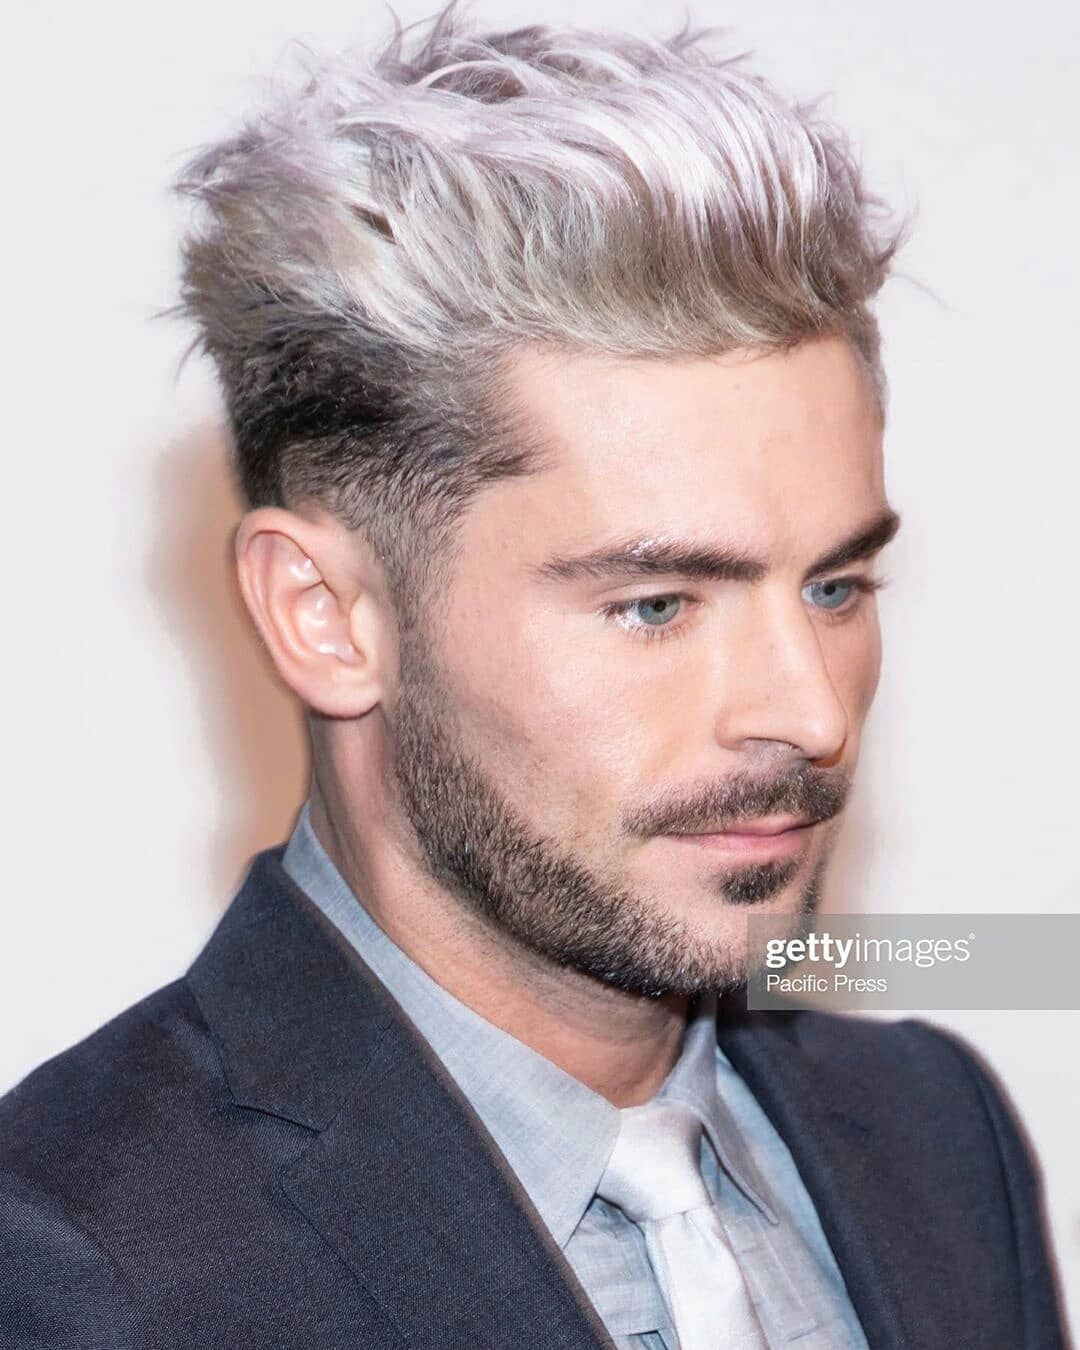 Zac Efron Hairstyle 2019 Hairstyle Zac Efron Coupe Undercut Coiffure Mode Homme